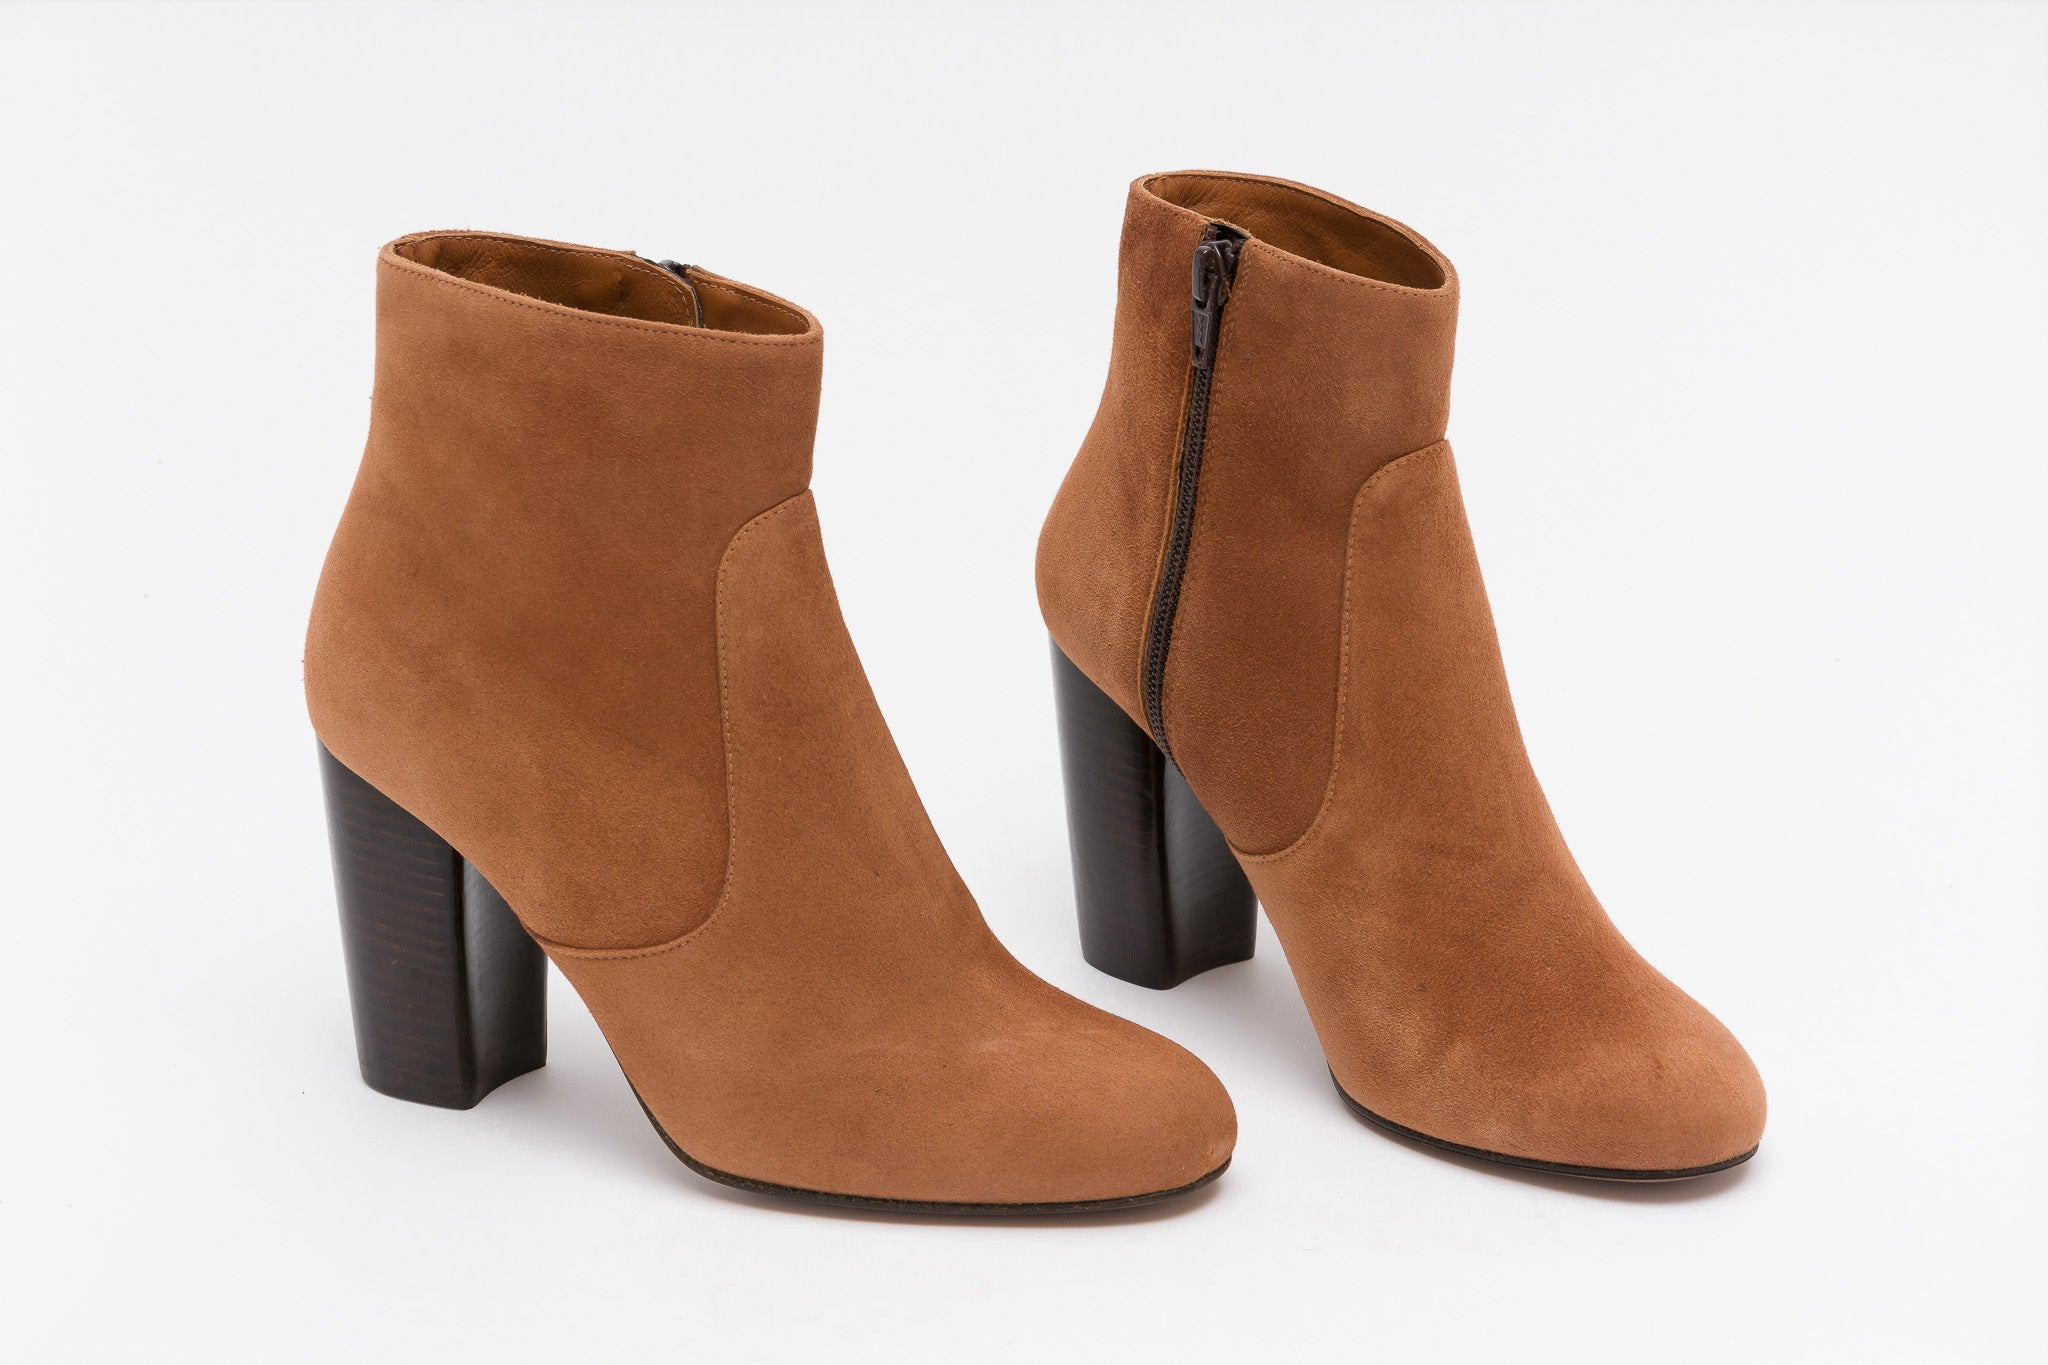 MARTELL Suede Ocre High Heel Boots